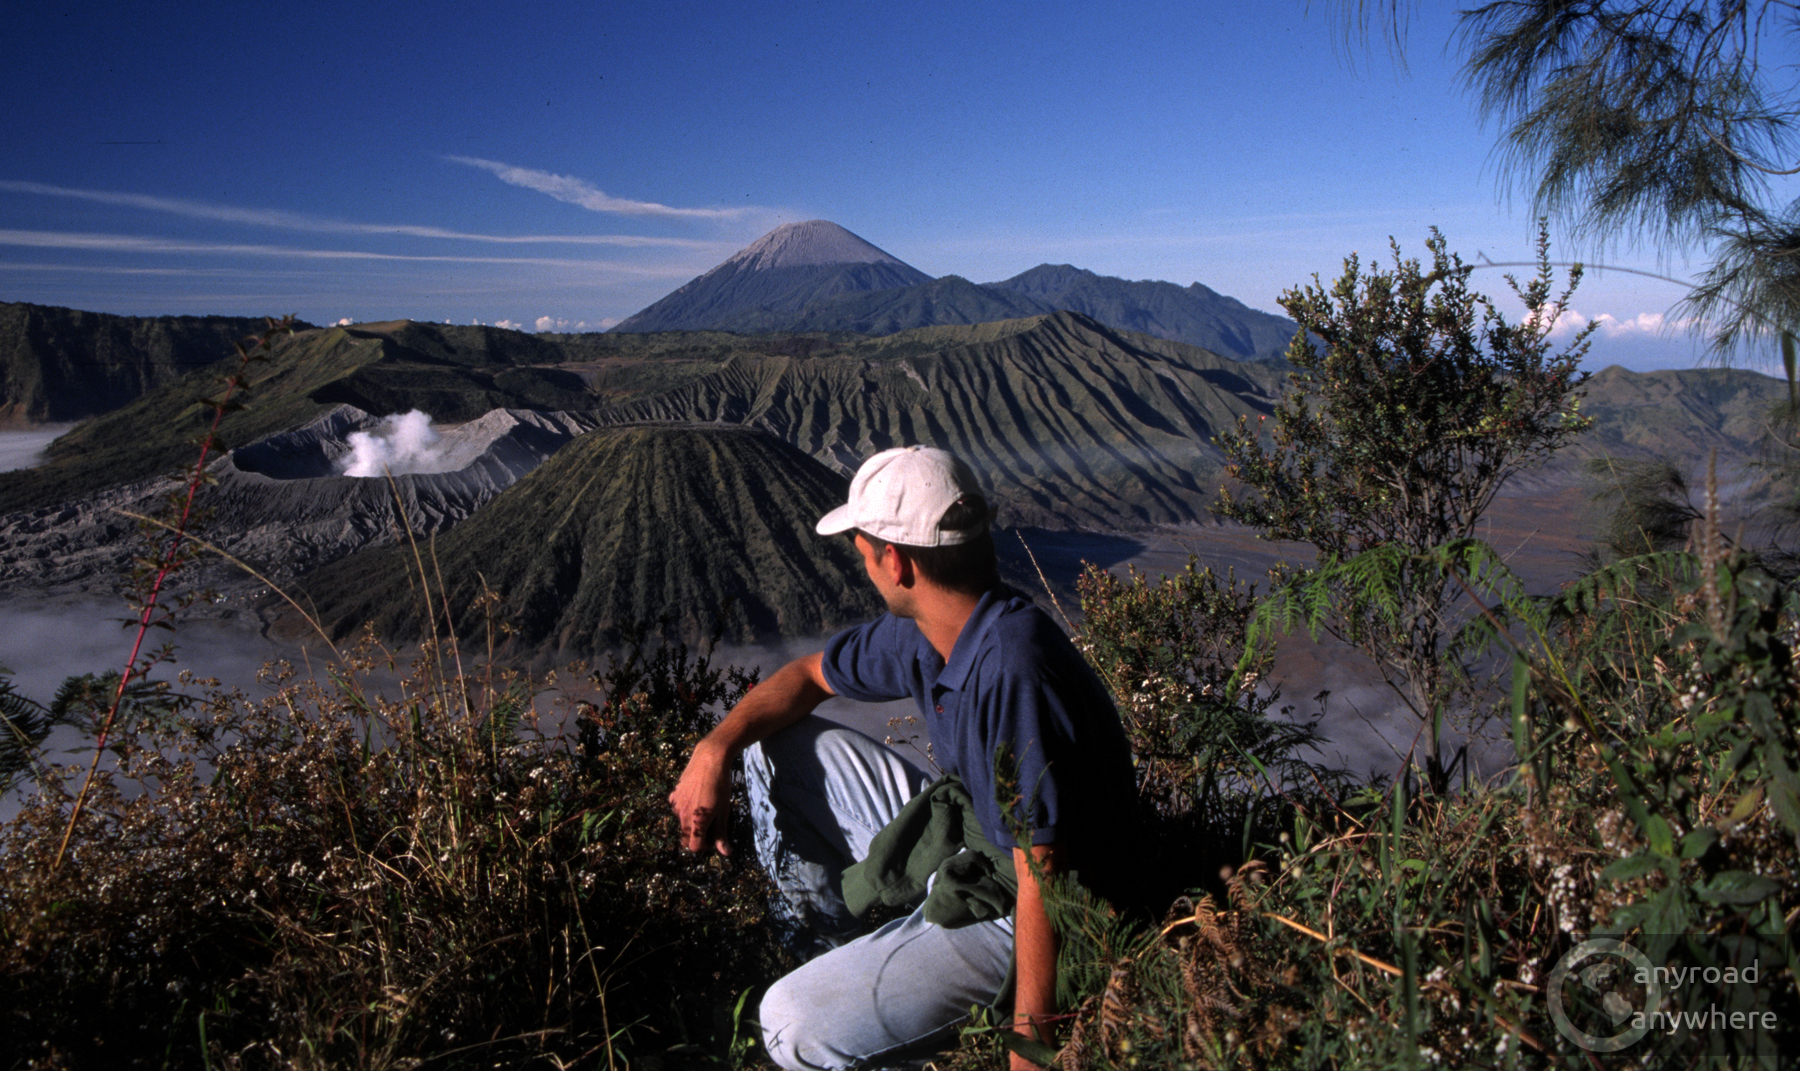 Enjoying the well-deserved view of Bromo and the other volcanoes